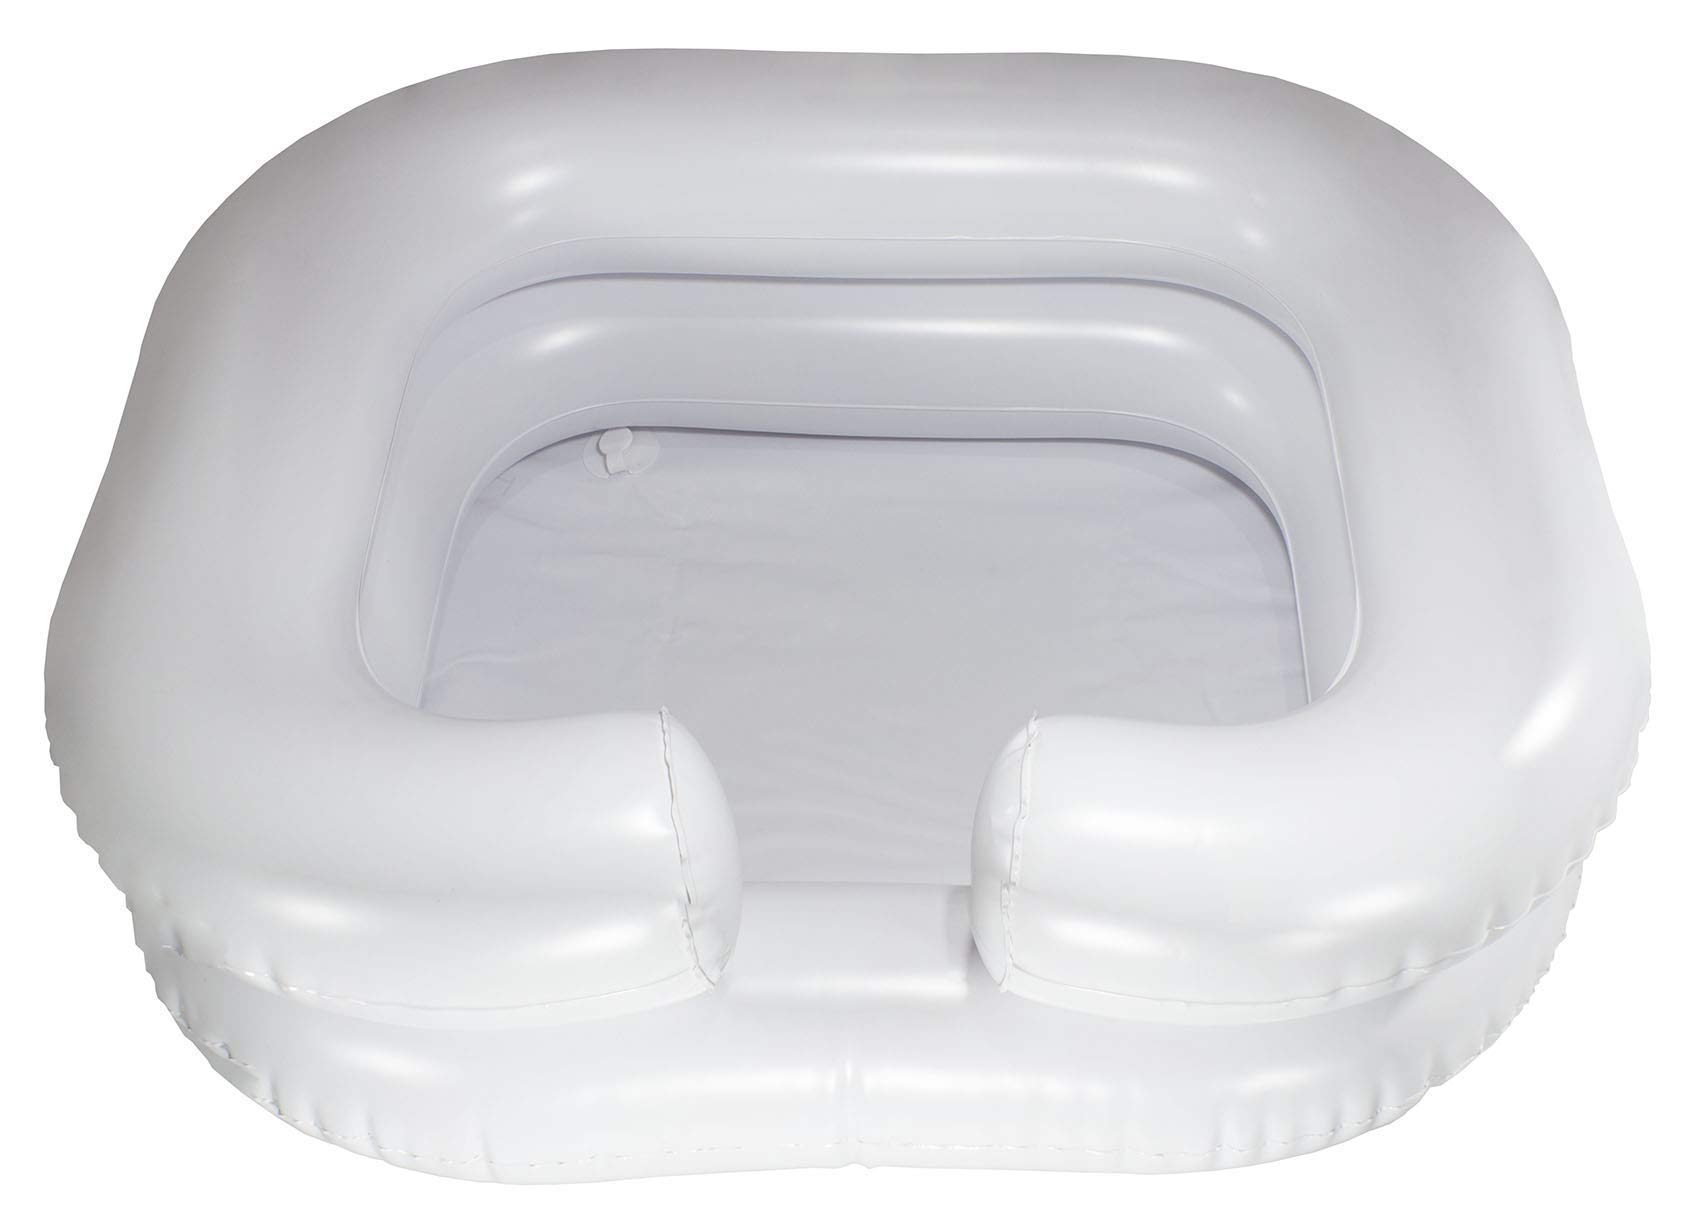 Comfortable Inflatable Shampoo Basin, White - in-Bed Shampooing for Pregnant Woman, Disabled and Loved Ones by Tyrant Essentials